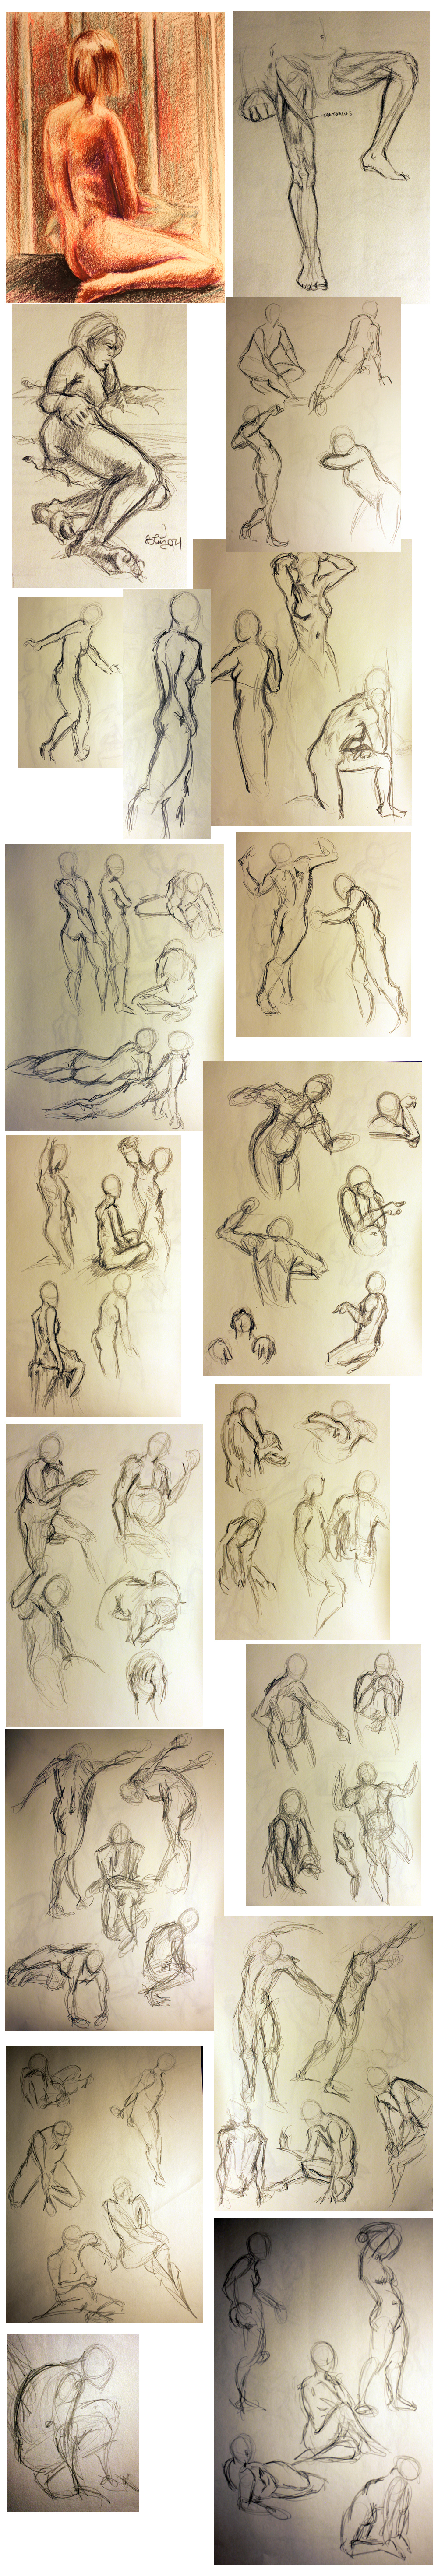 Gestures from college.